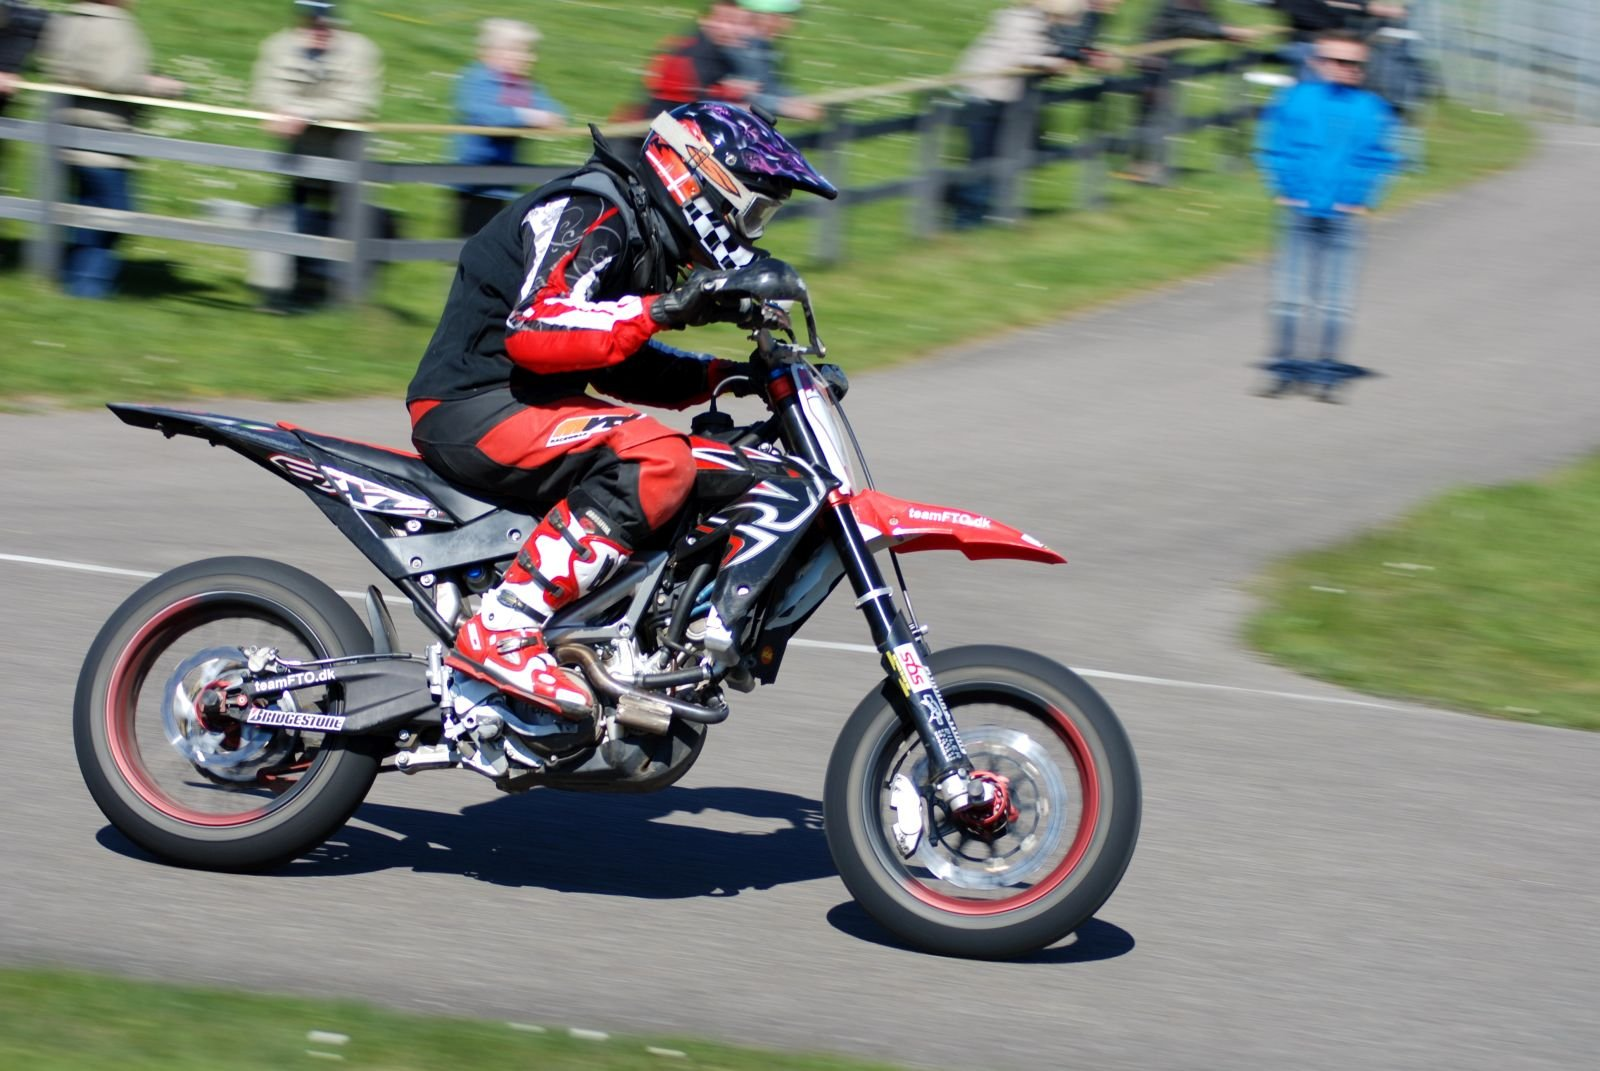 Supermotard_DM_ALS_2009 (34)